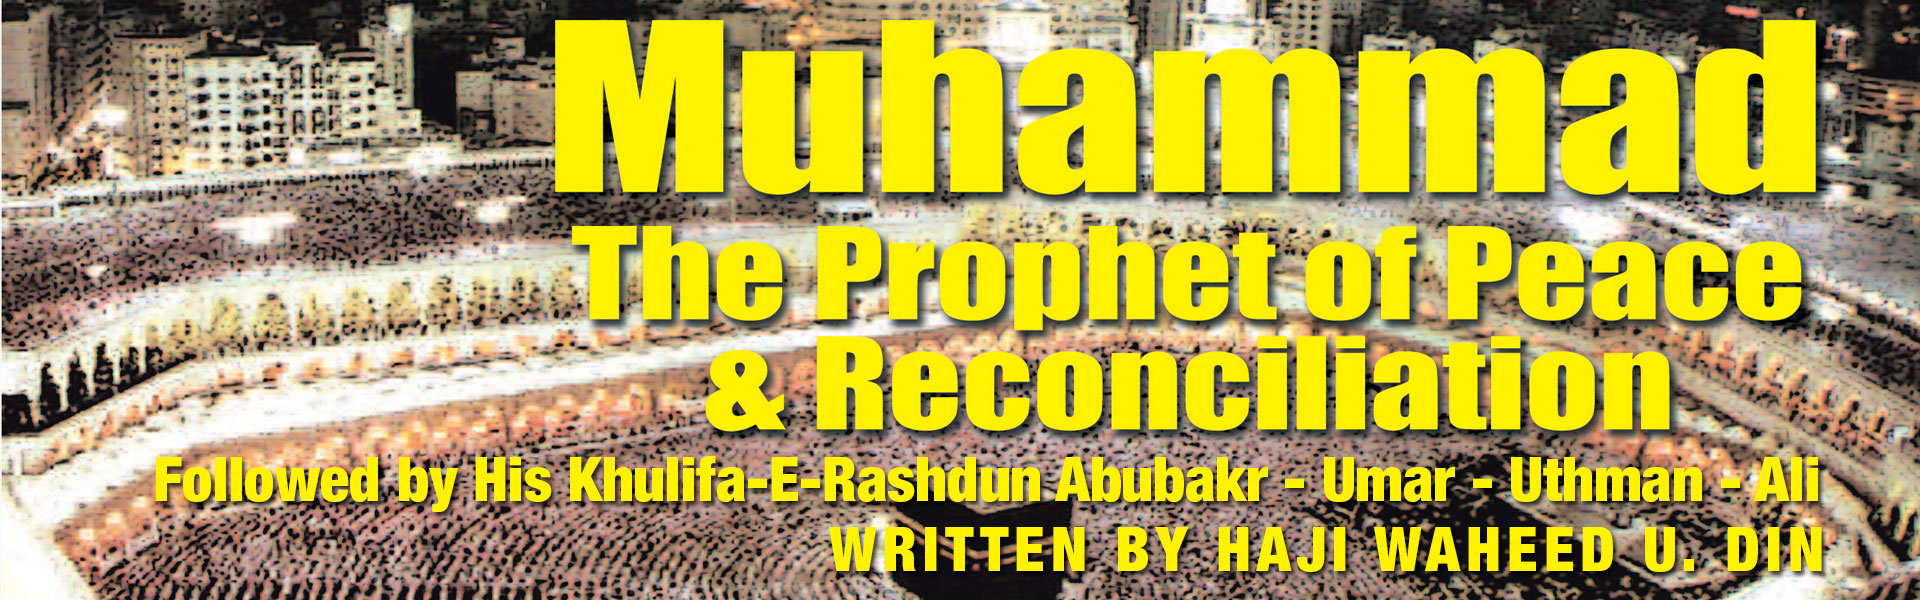 Muhammad the Prophet of Peace & Reconciliation